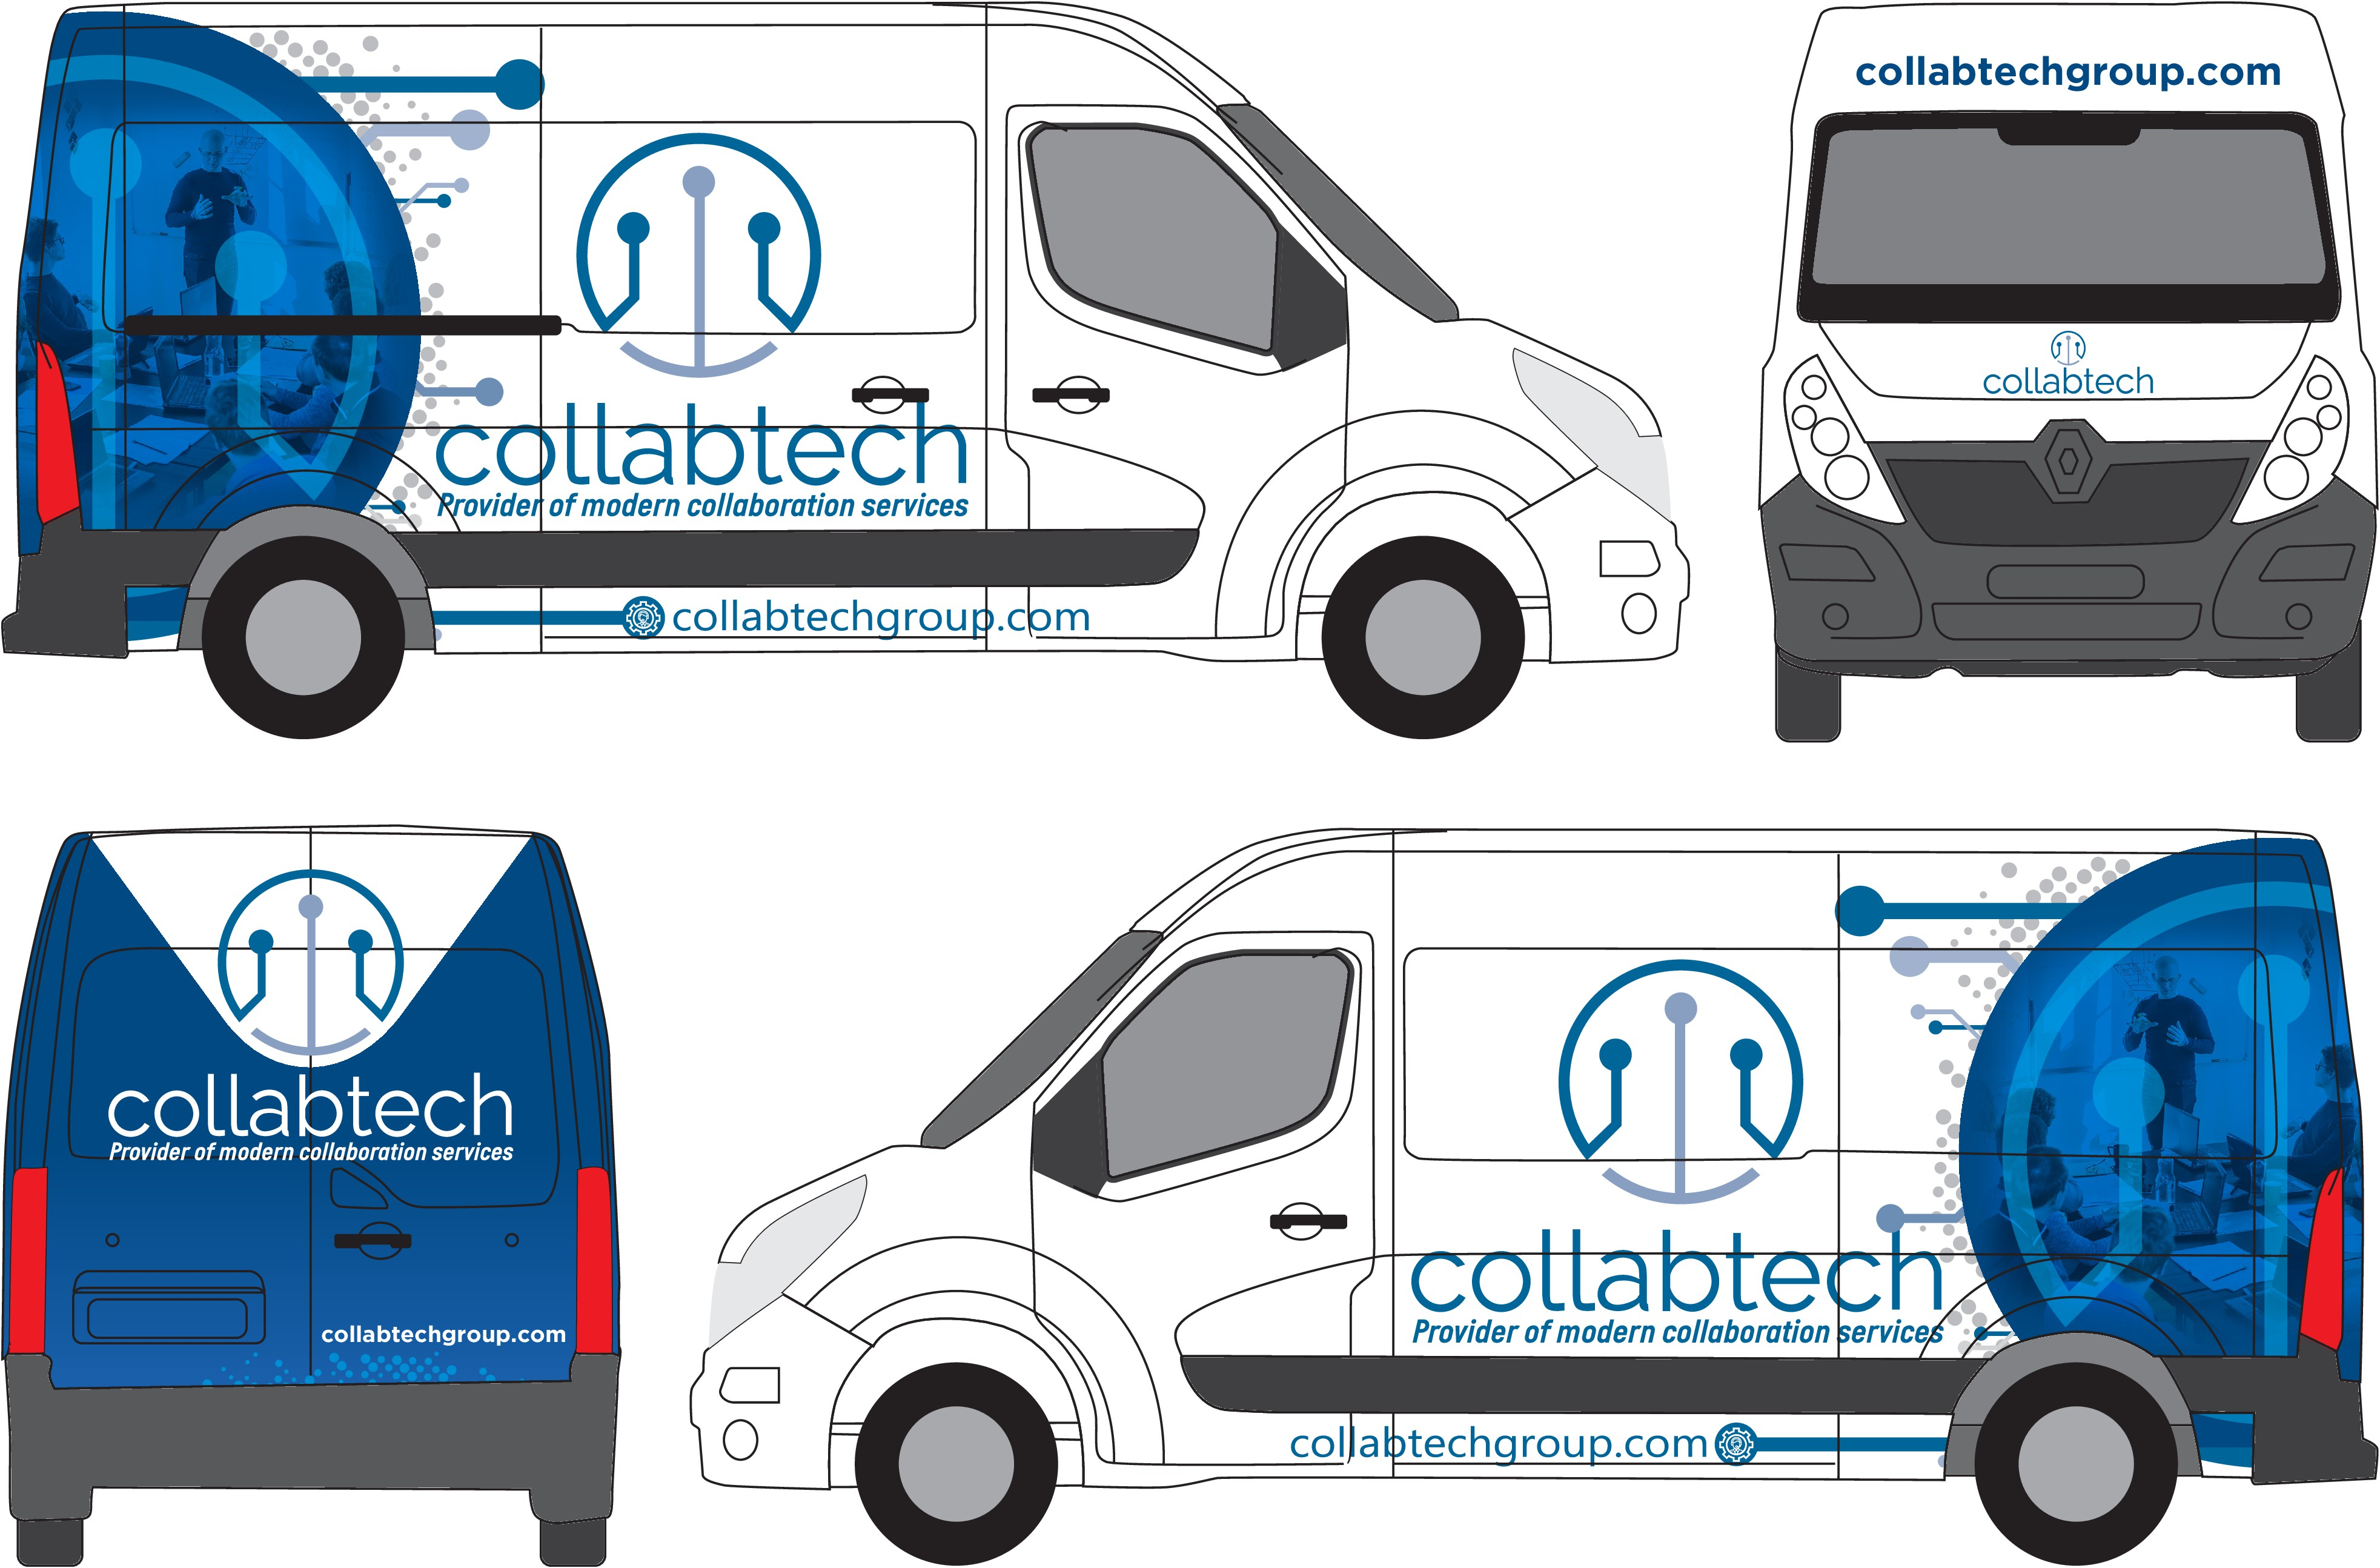 Design for the leader in Collaboration Technology Services!